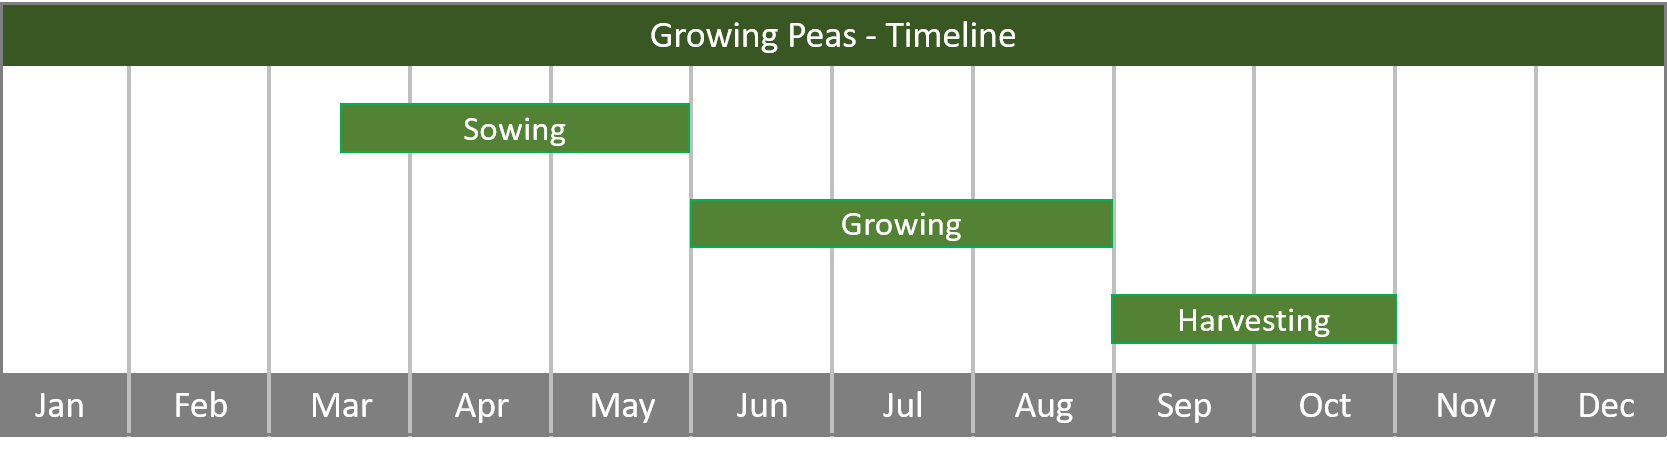 how to grow peas from seed to harvest at home timeline